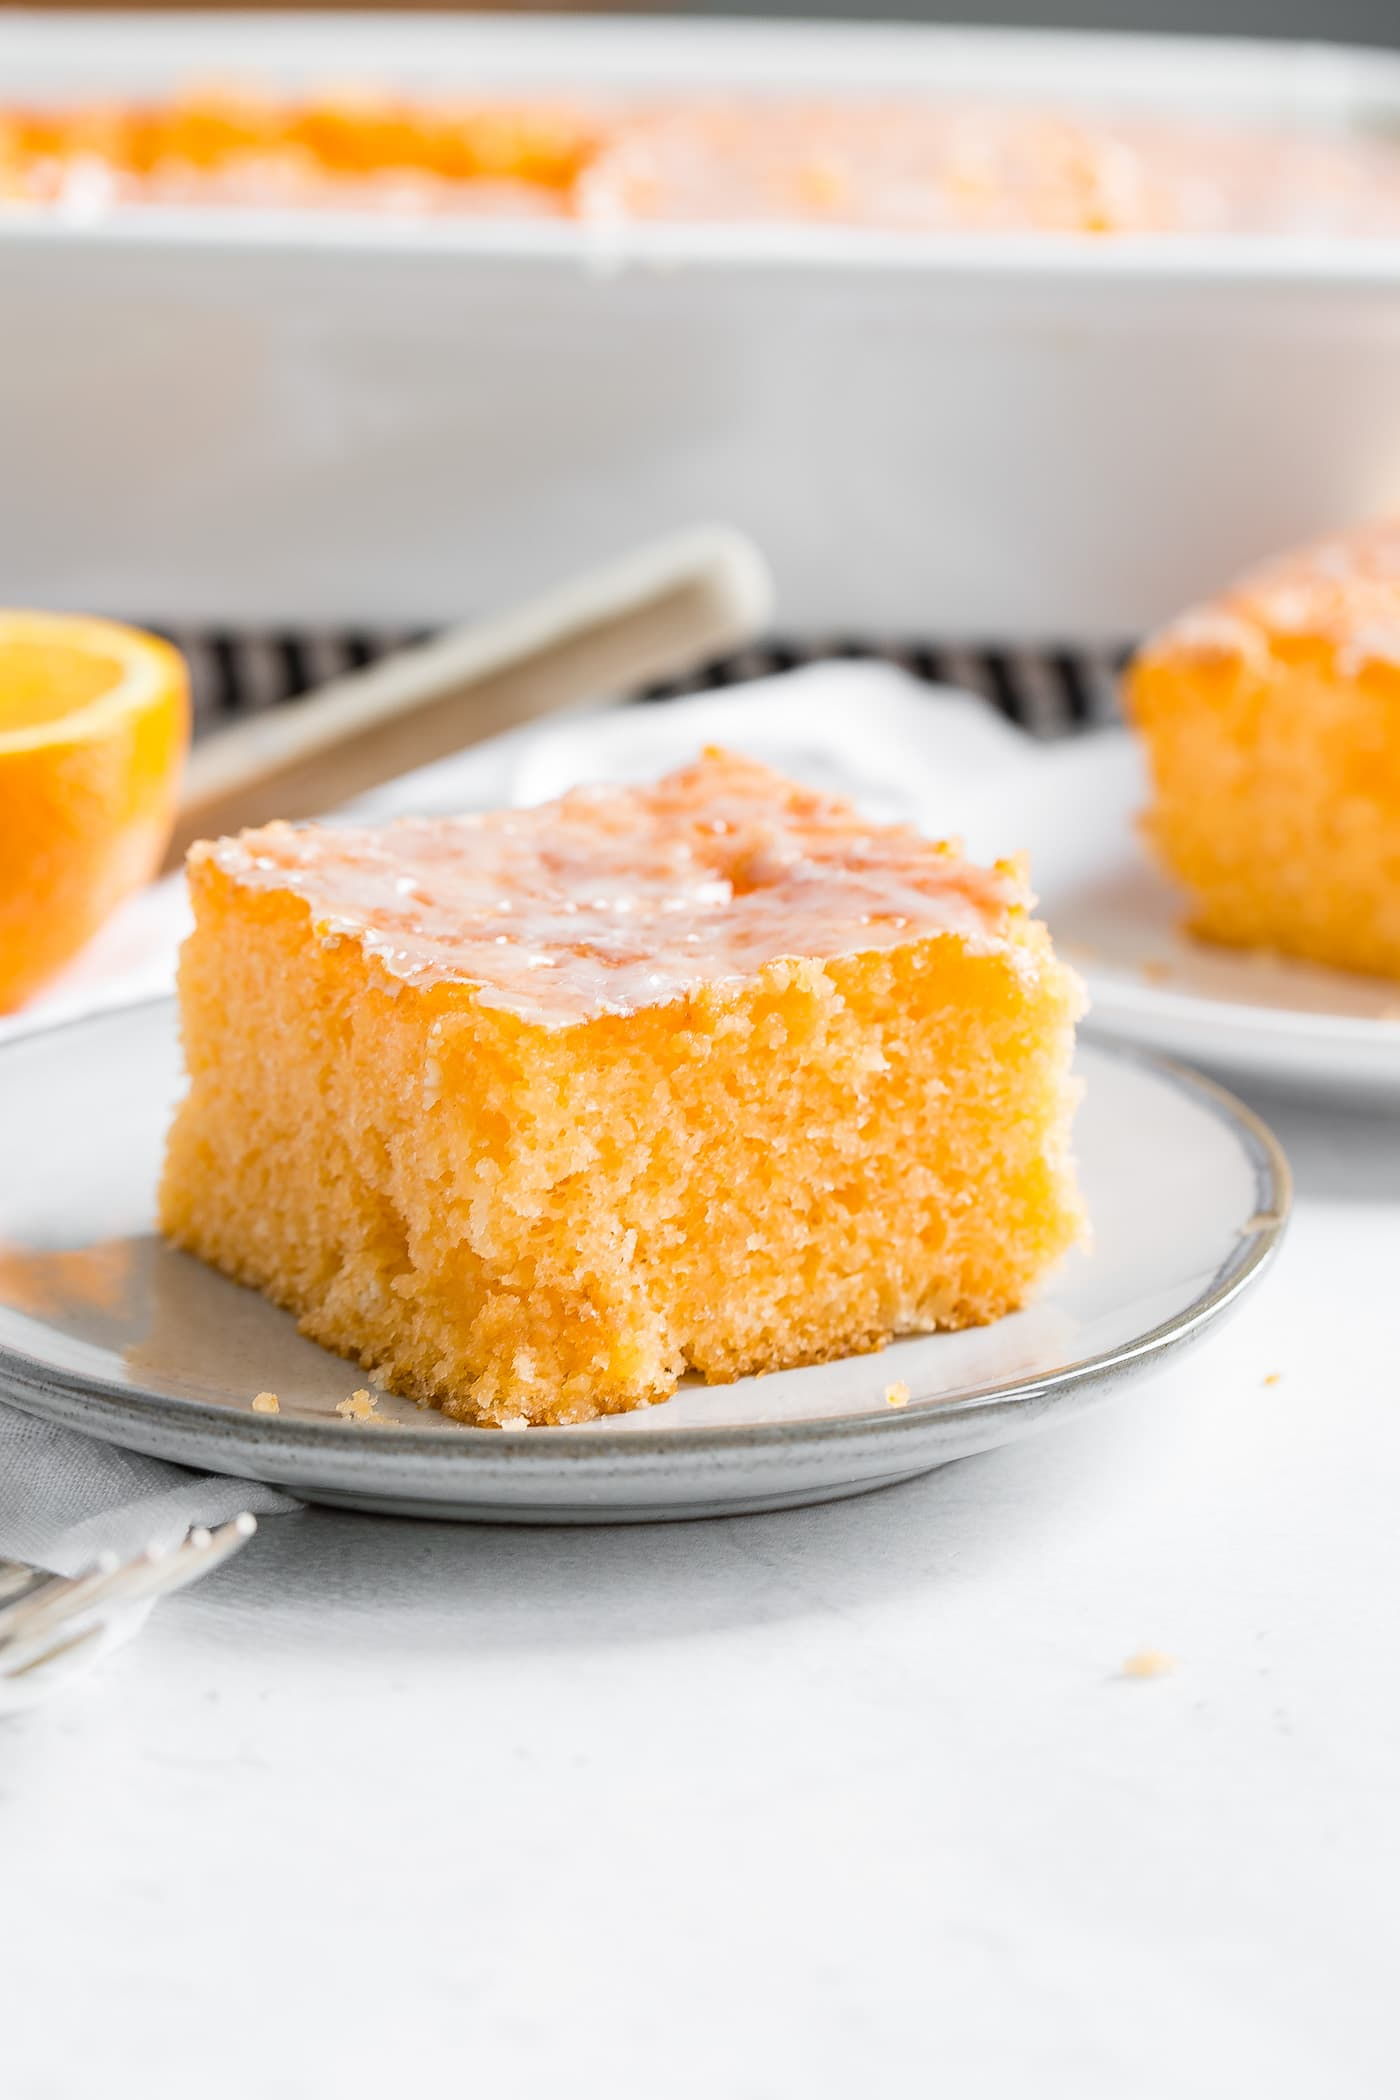 A photo of a piece of orange jello cake on a small white plate.